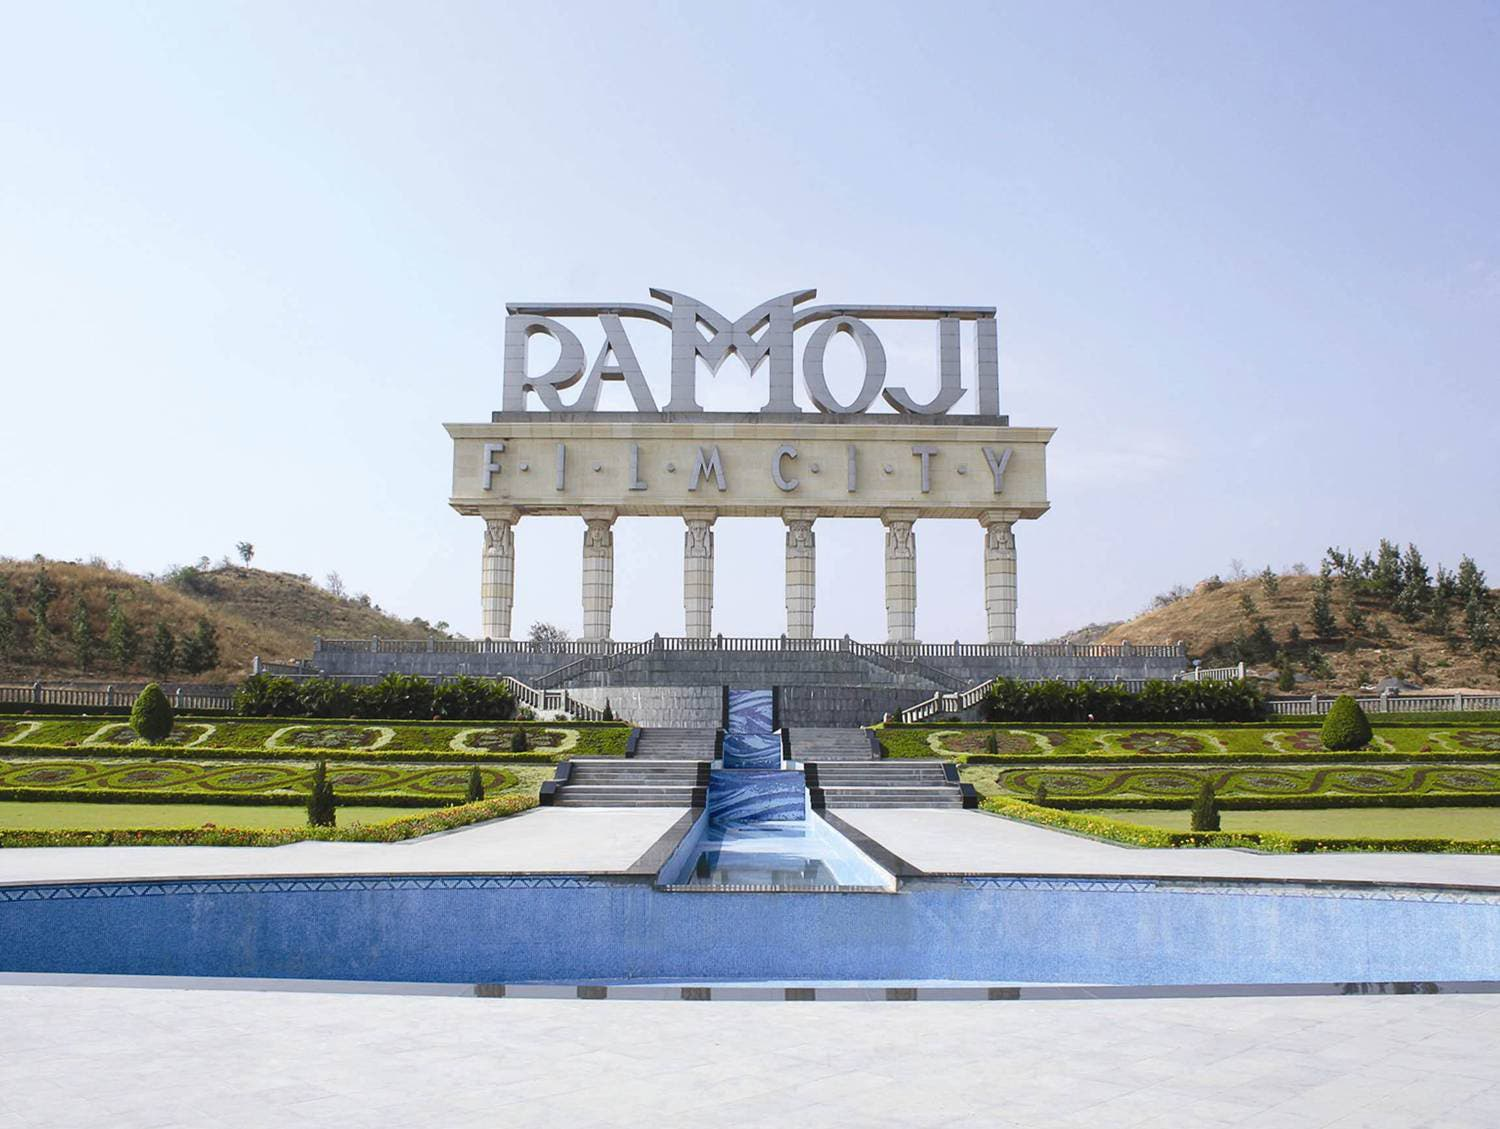 Ramoji is located at a distance of 30 km from the city of Hyderabad. (Supplied)